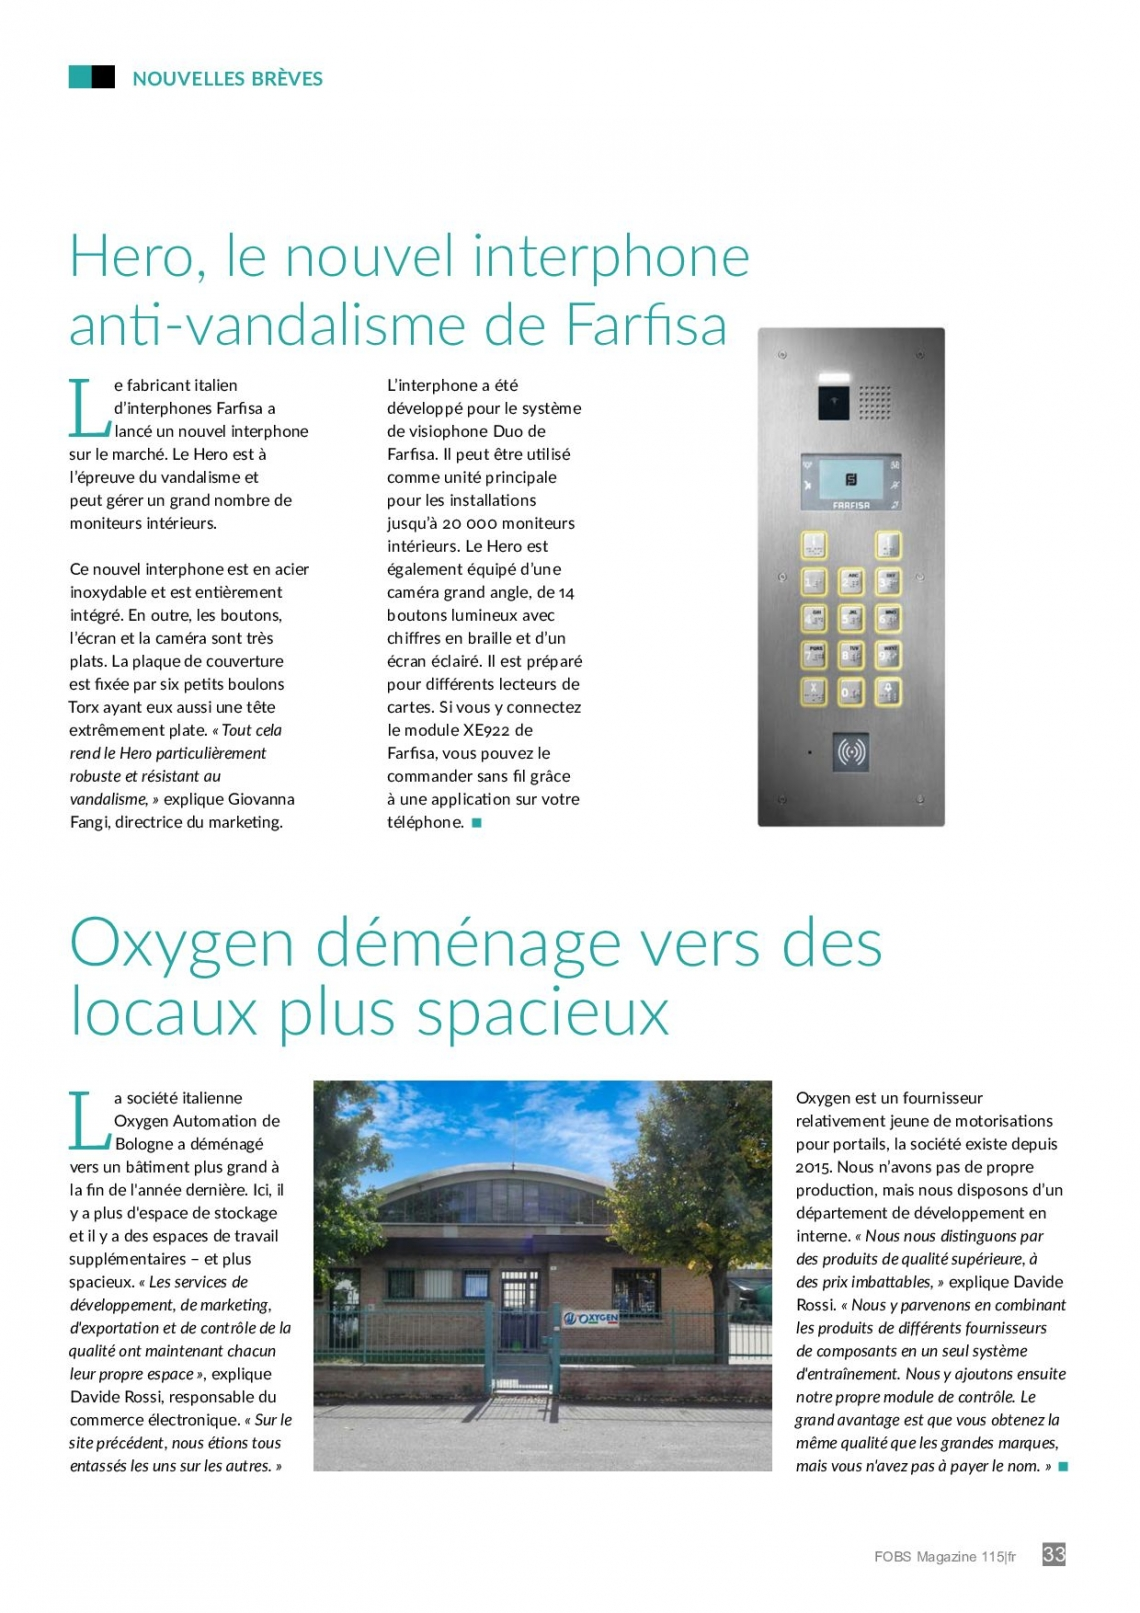 Hero: le neuveau interphone anti vandalisme de Farfisa